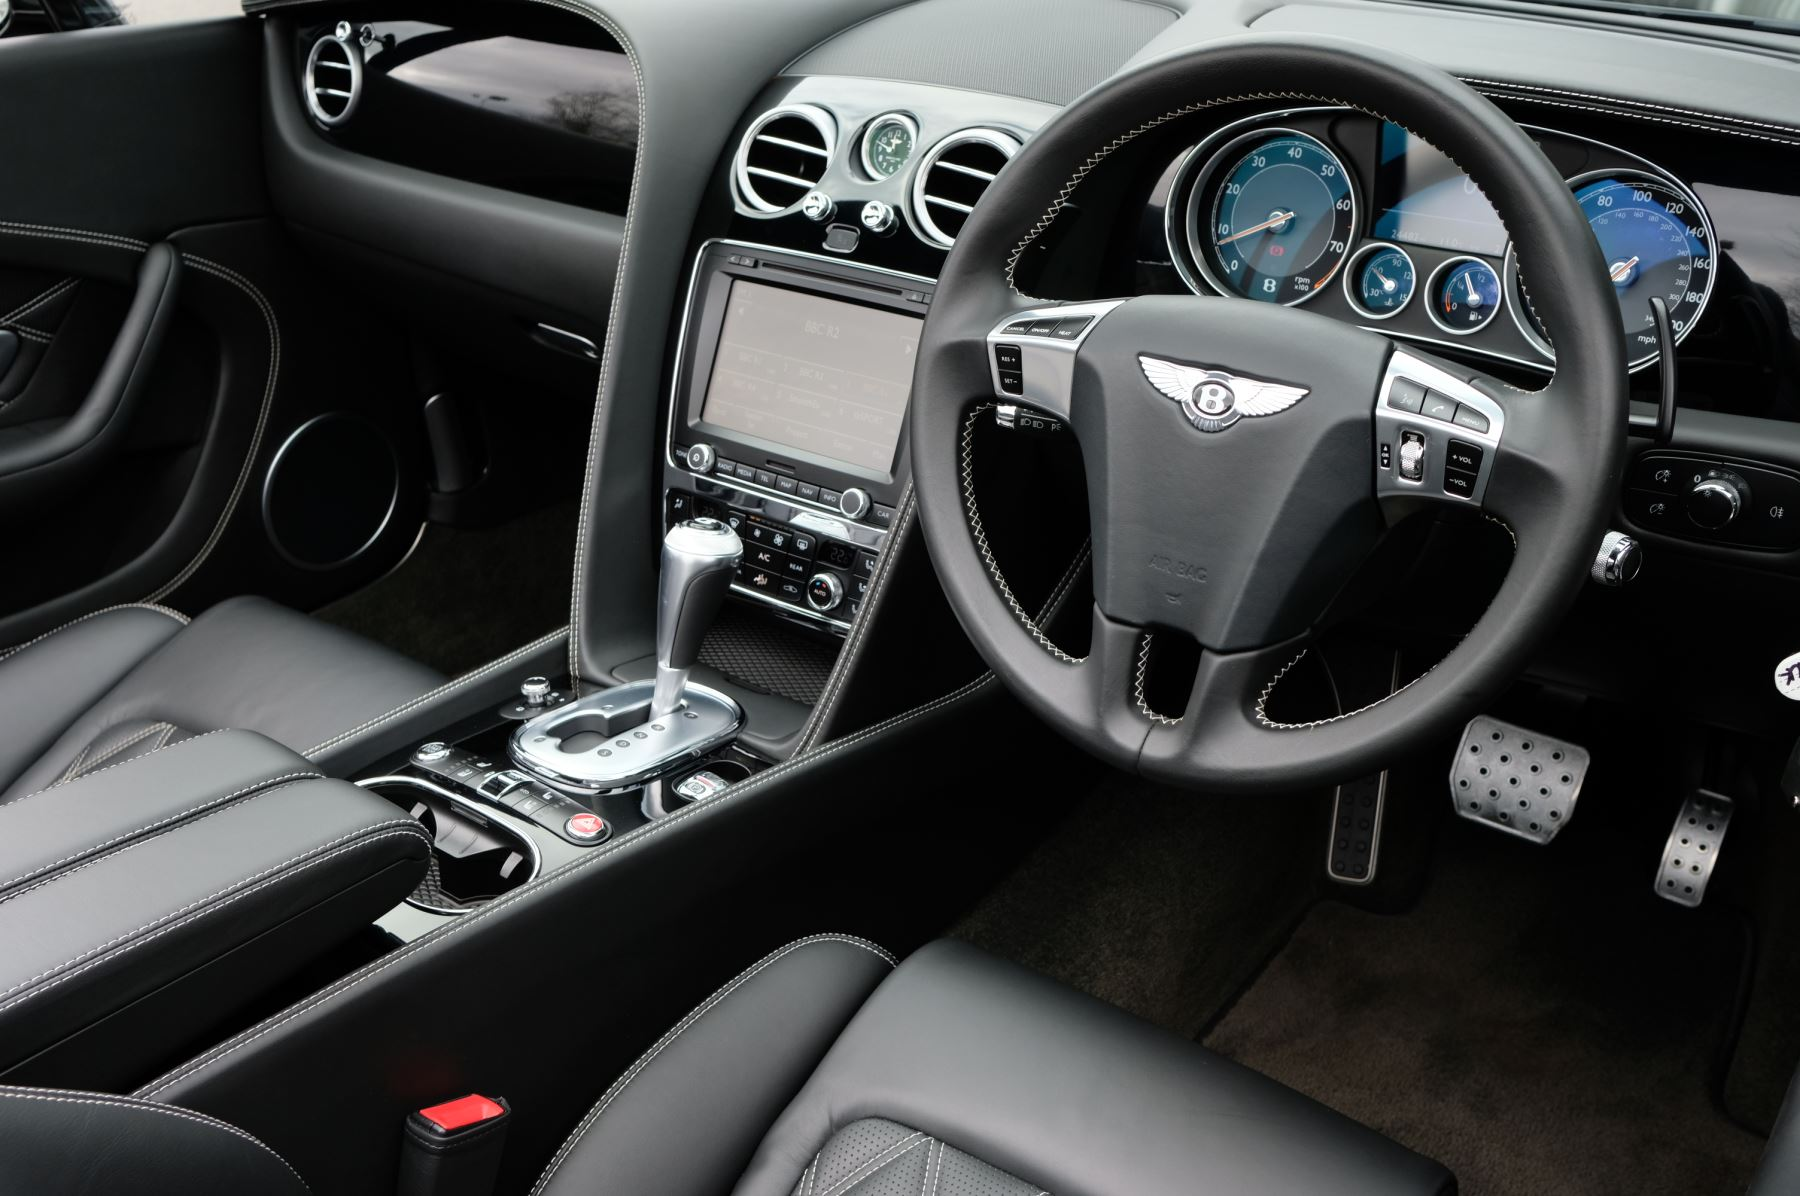 Bentley Continental GT V8 S Convertible Black Edition 4.0 V8 S 2dr - Concours Series  image 10